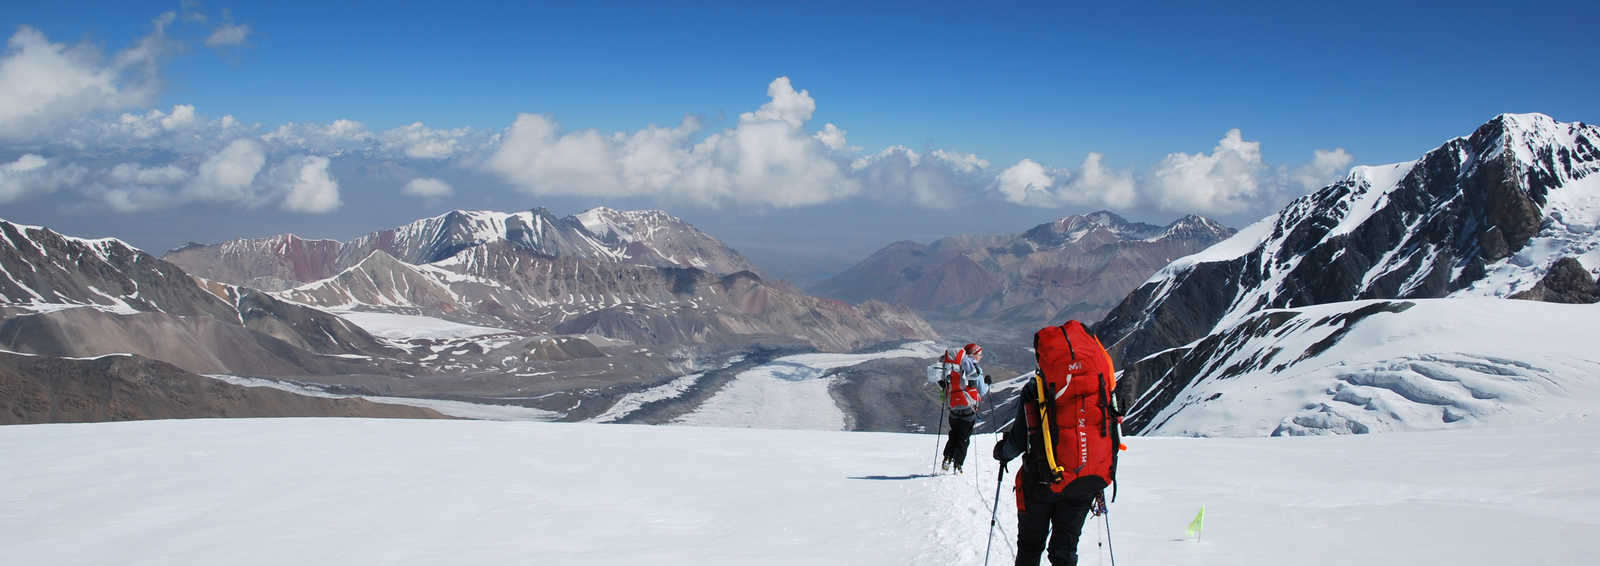 Descending from Lenin Peak